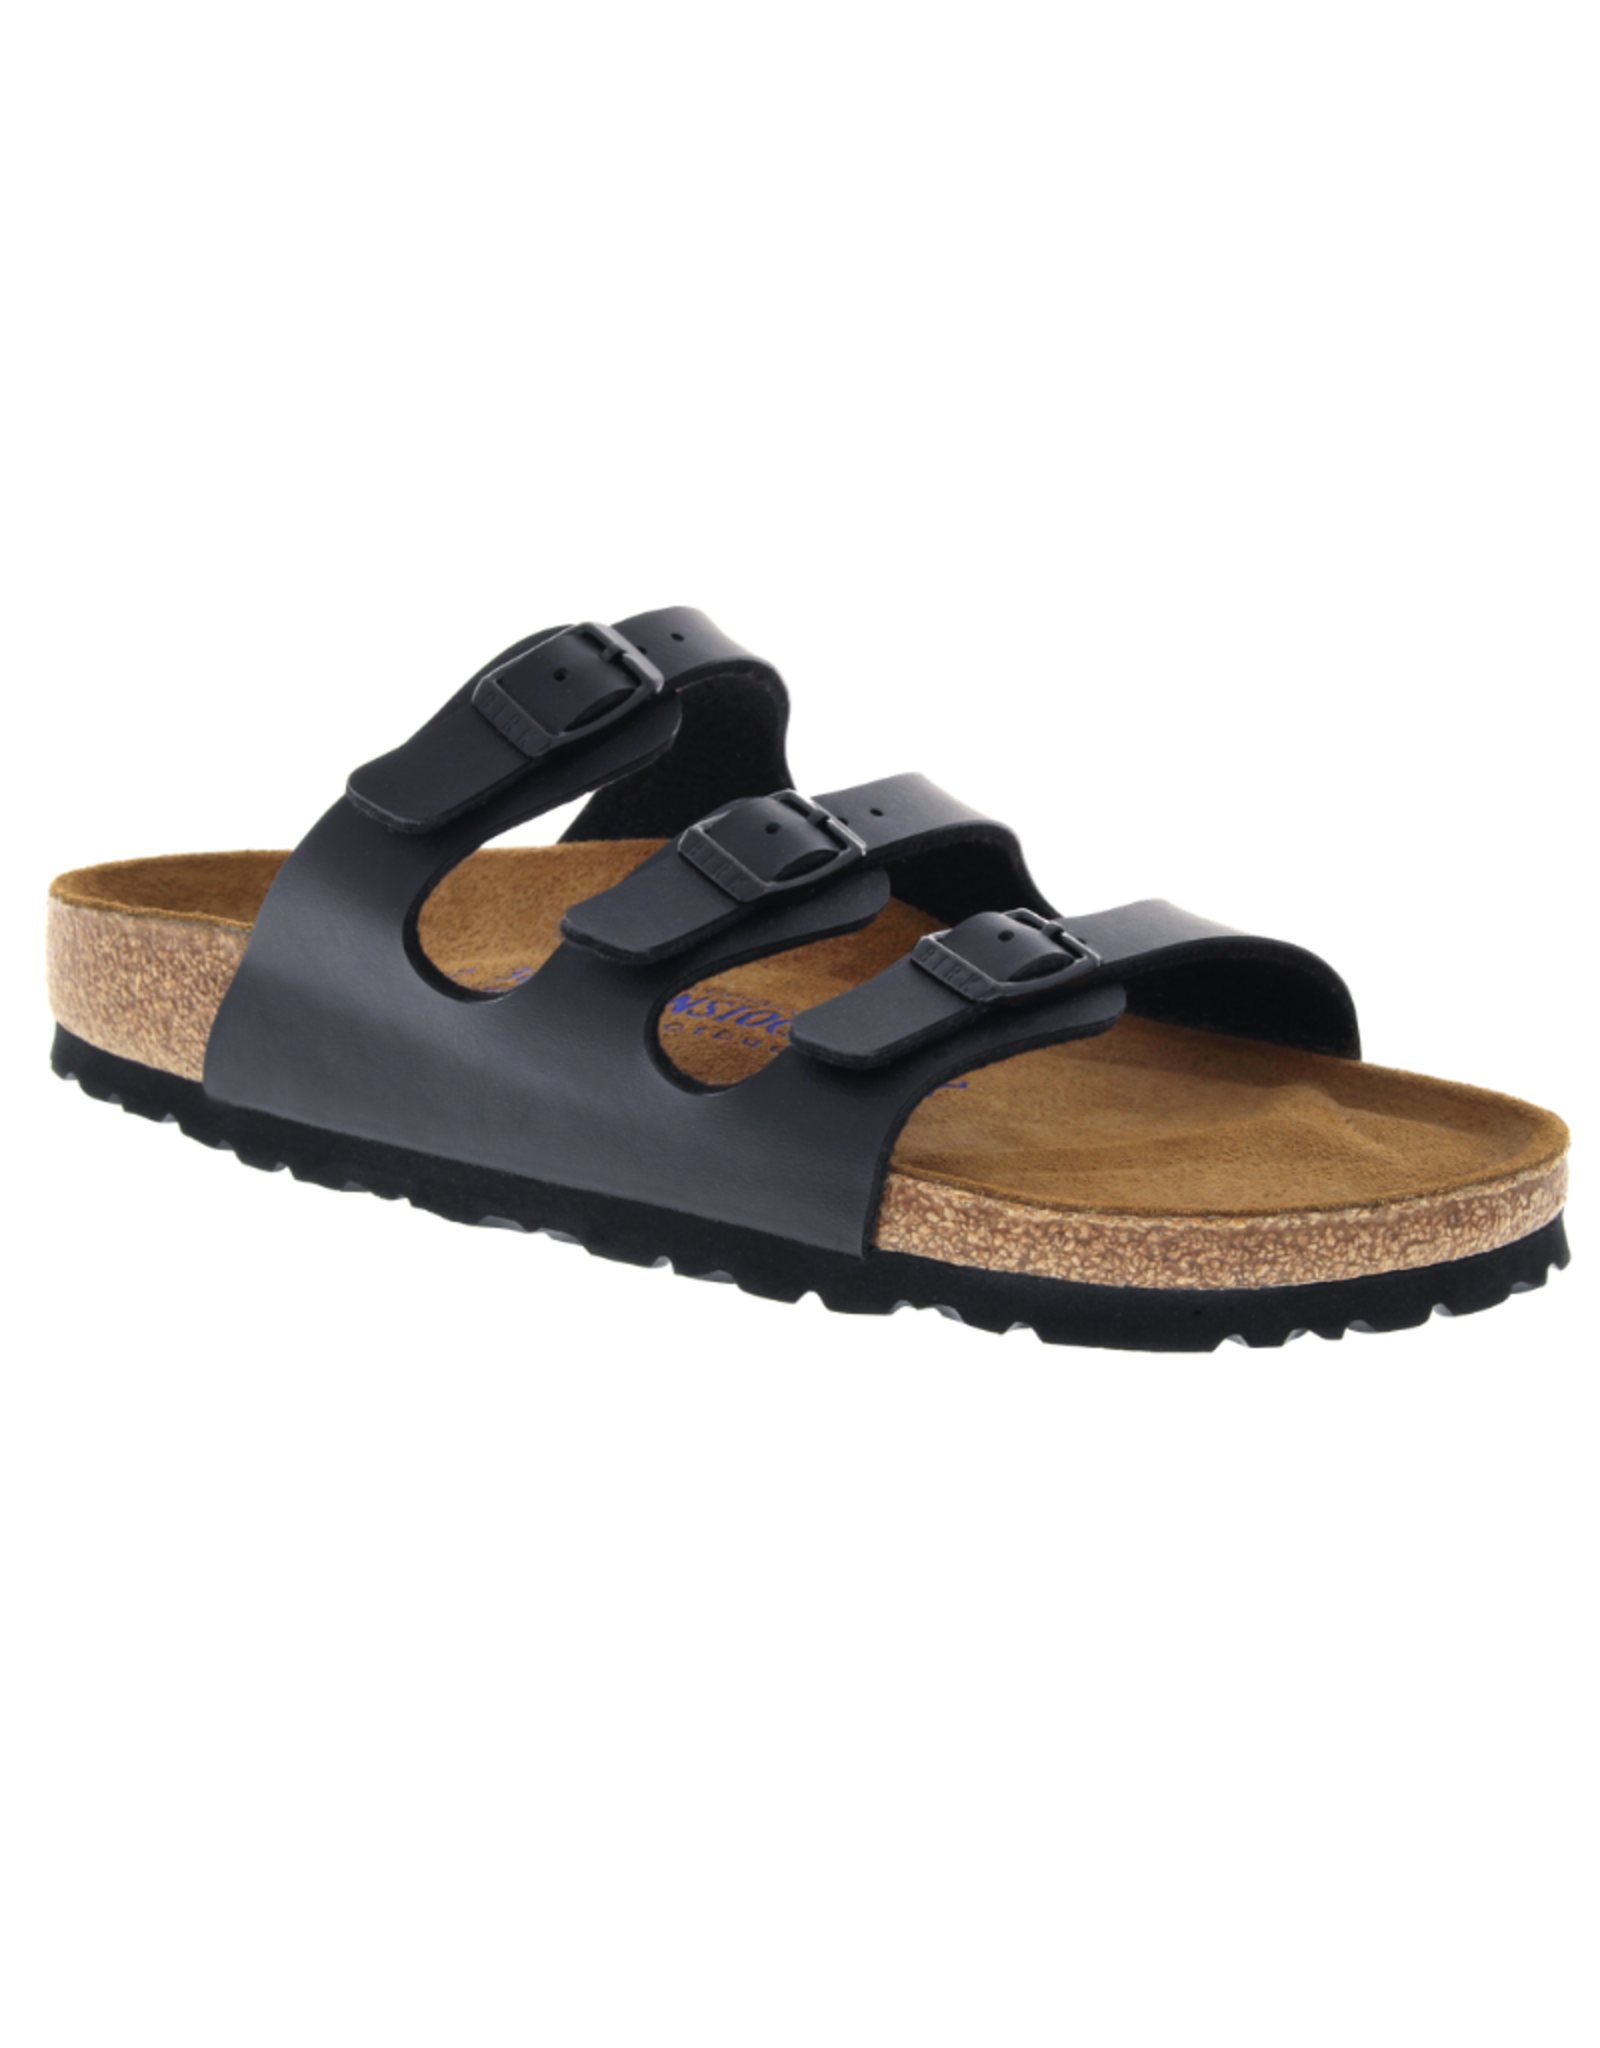 Florida Black Birko-Flor Soft Footbed